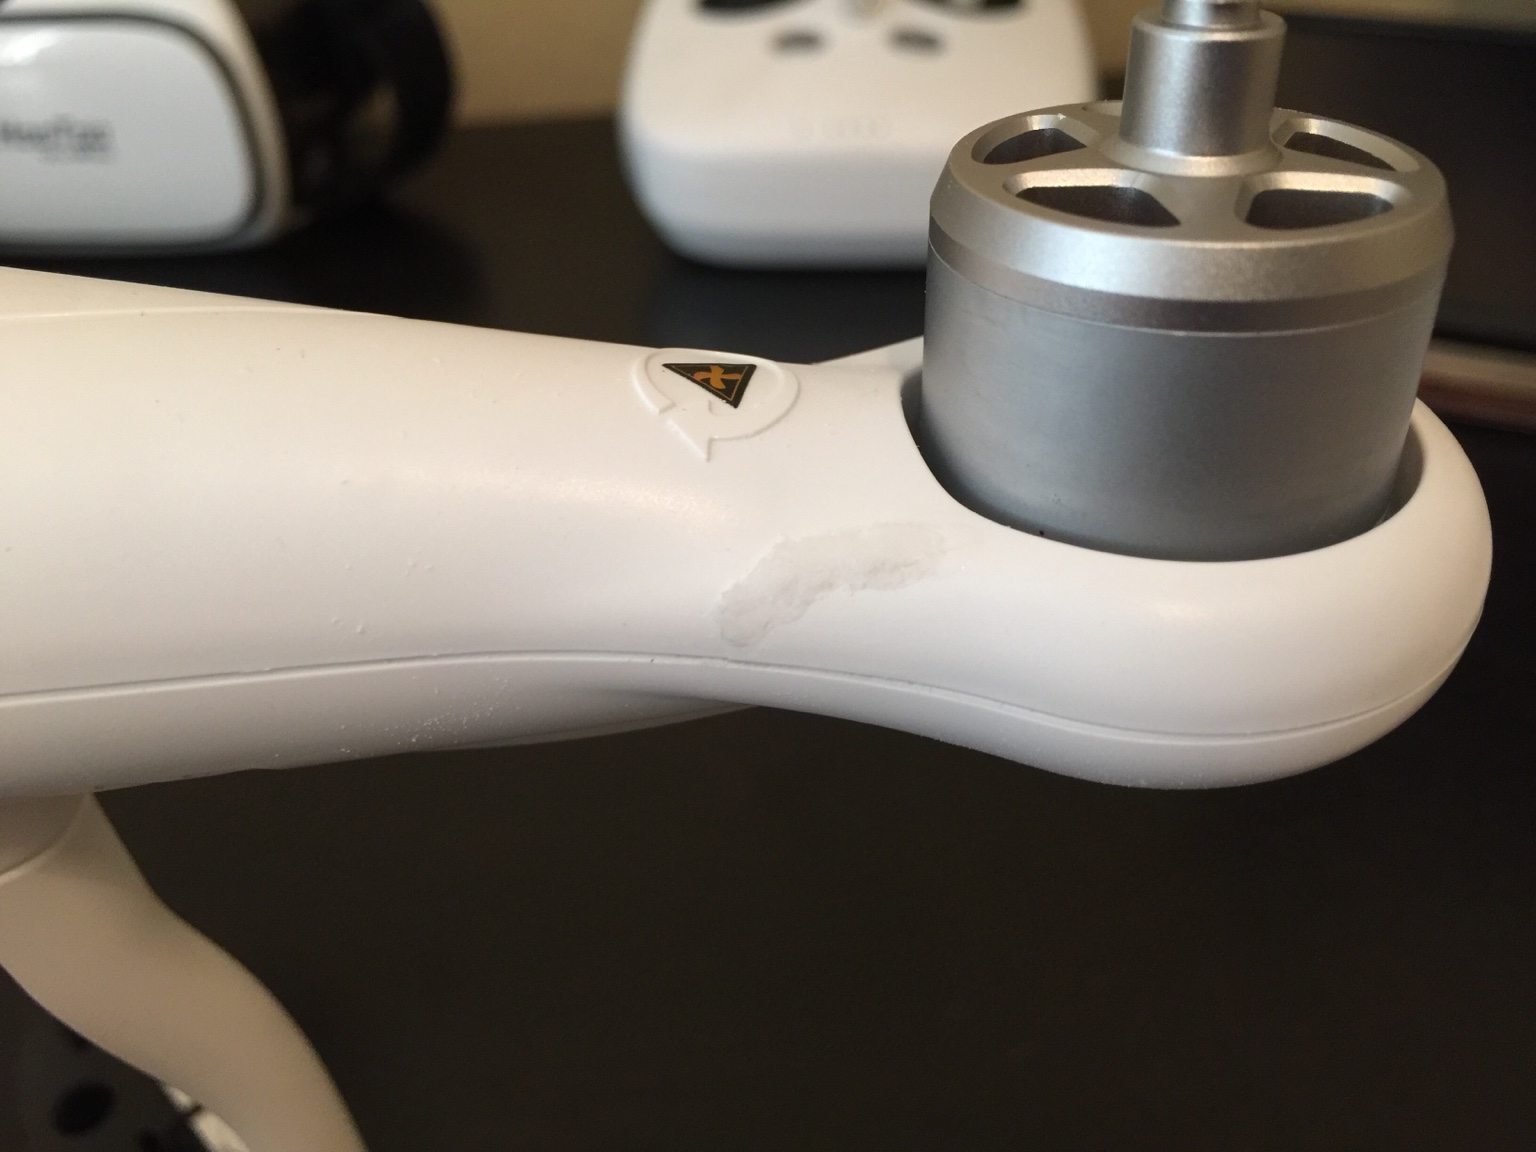 Gluing Stress Cracks - Baking Soda Trick | DJI Phantom Drone Forum